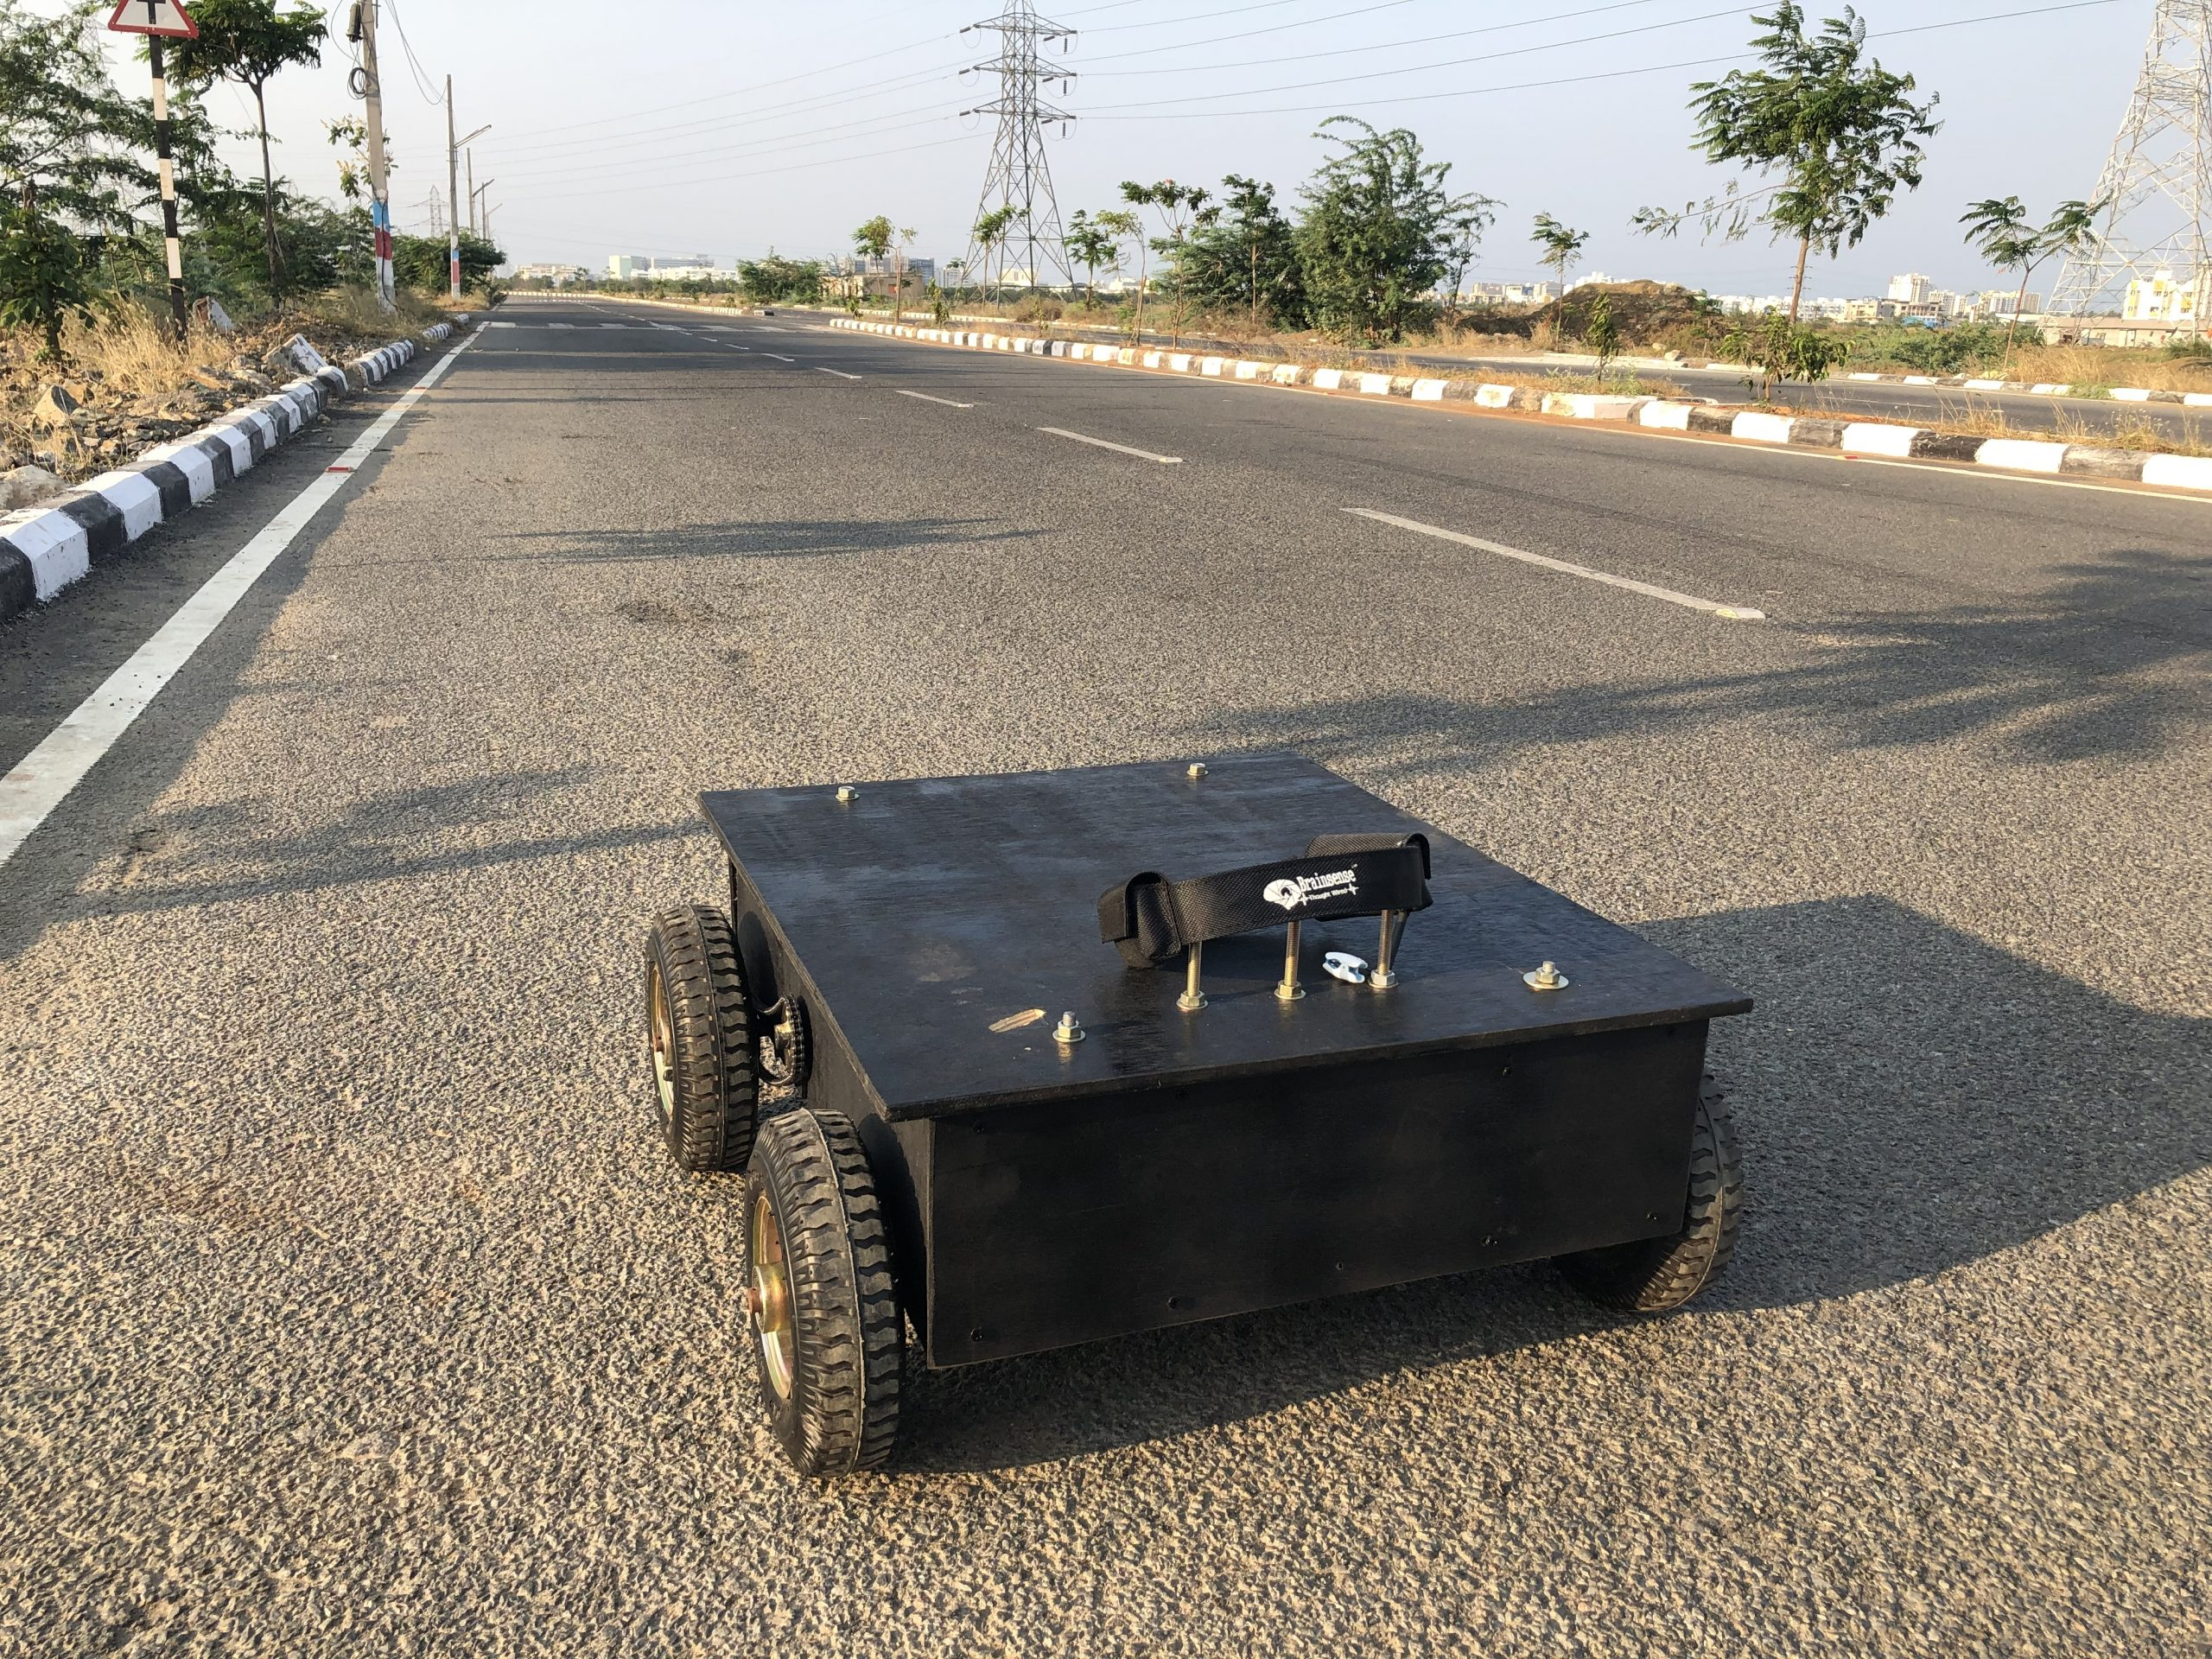 Real time Brain controlled vehicle using Brainsense